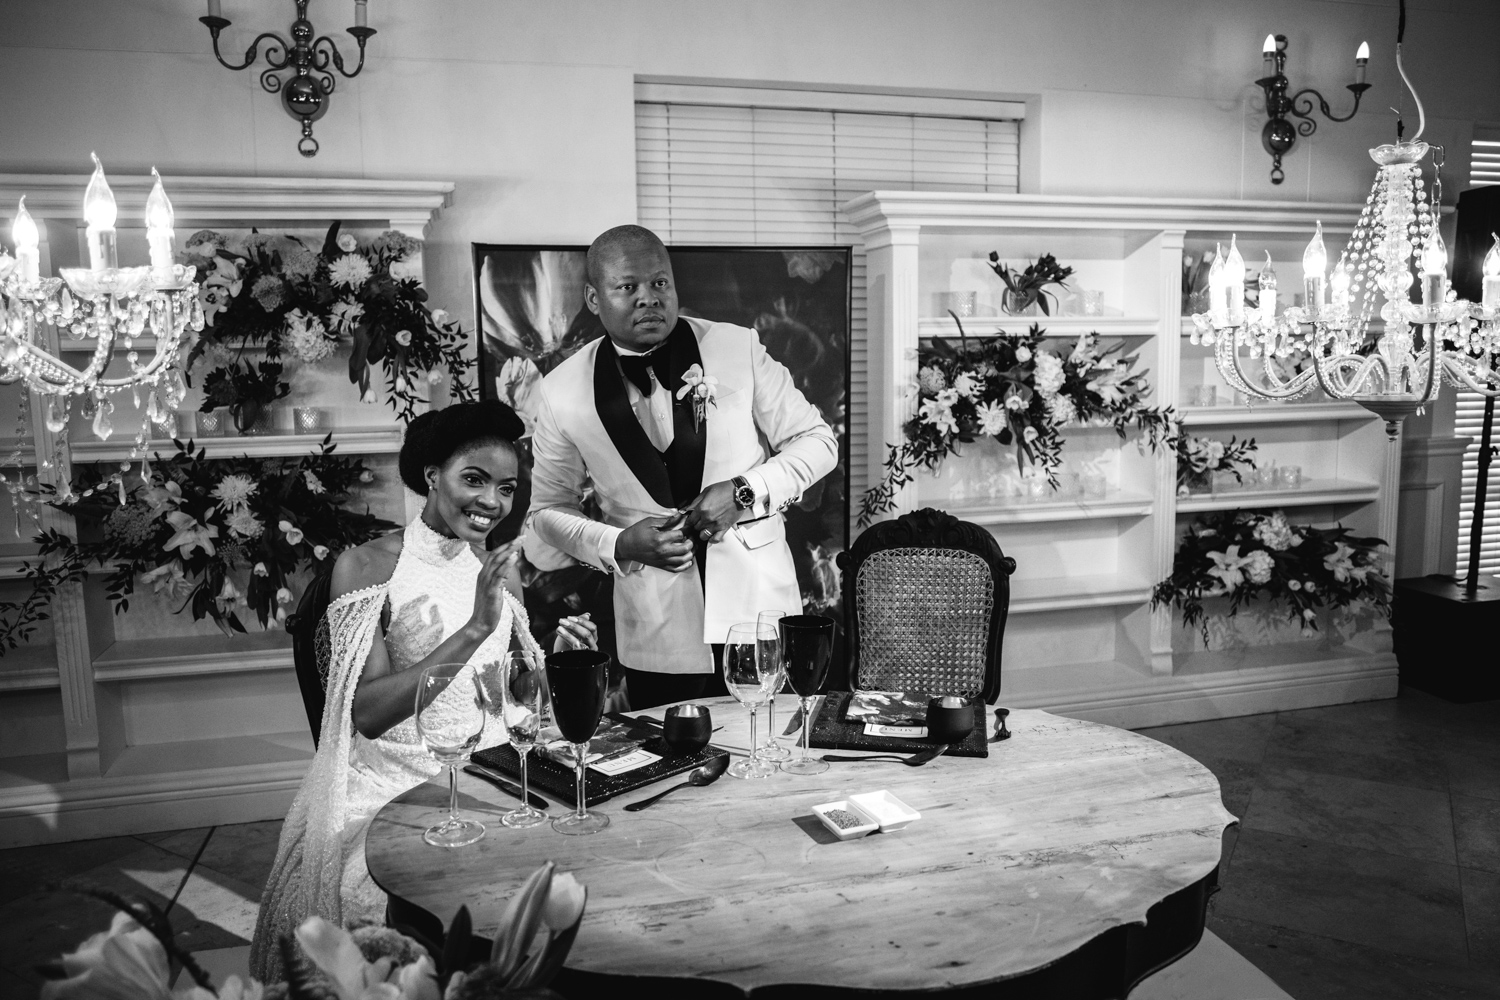 a black and white image taken by Vividblue of the bride and groom siting at their wedding table at Val de Vie.